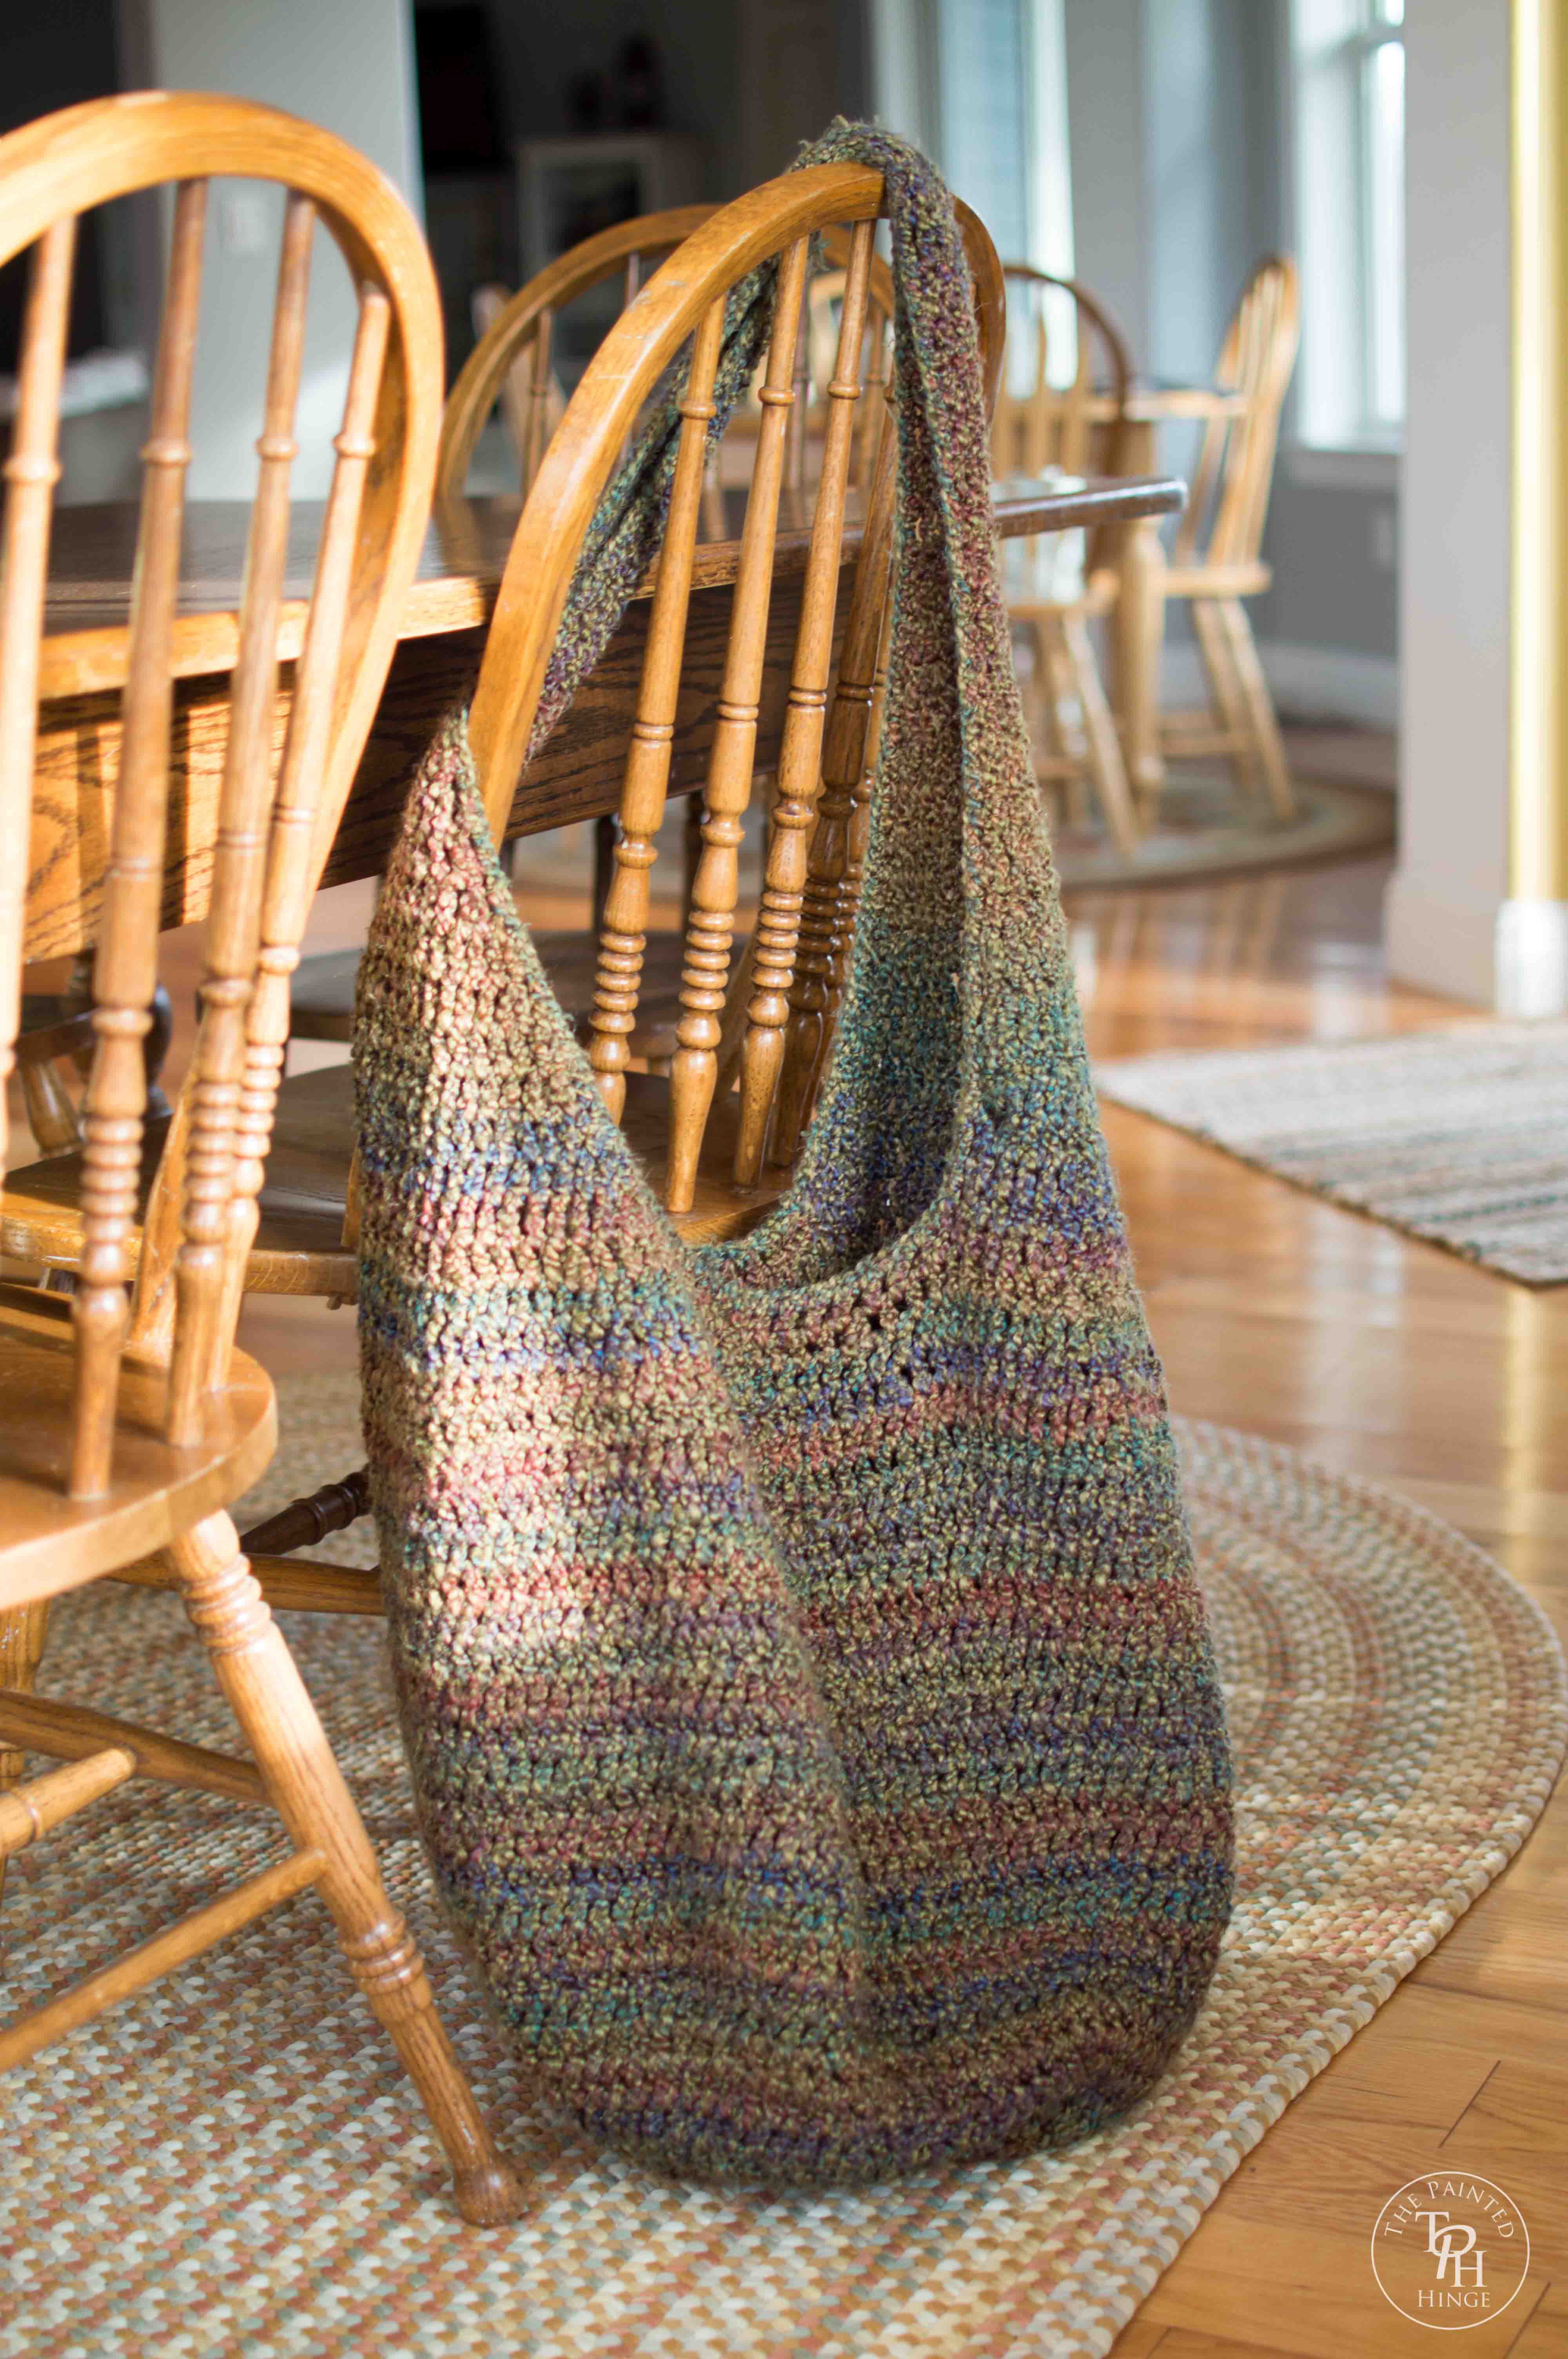 Crochet Market Bag Pattern Free : Extra Large Market Bag Free Crochet Pattern